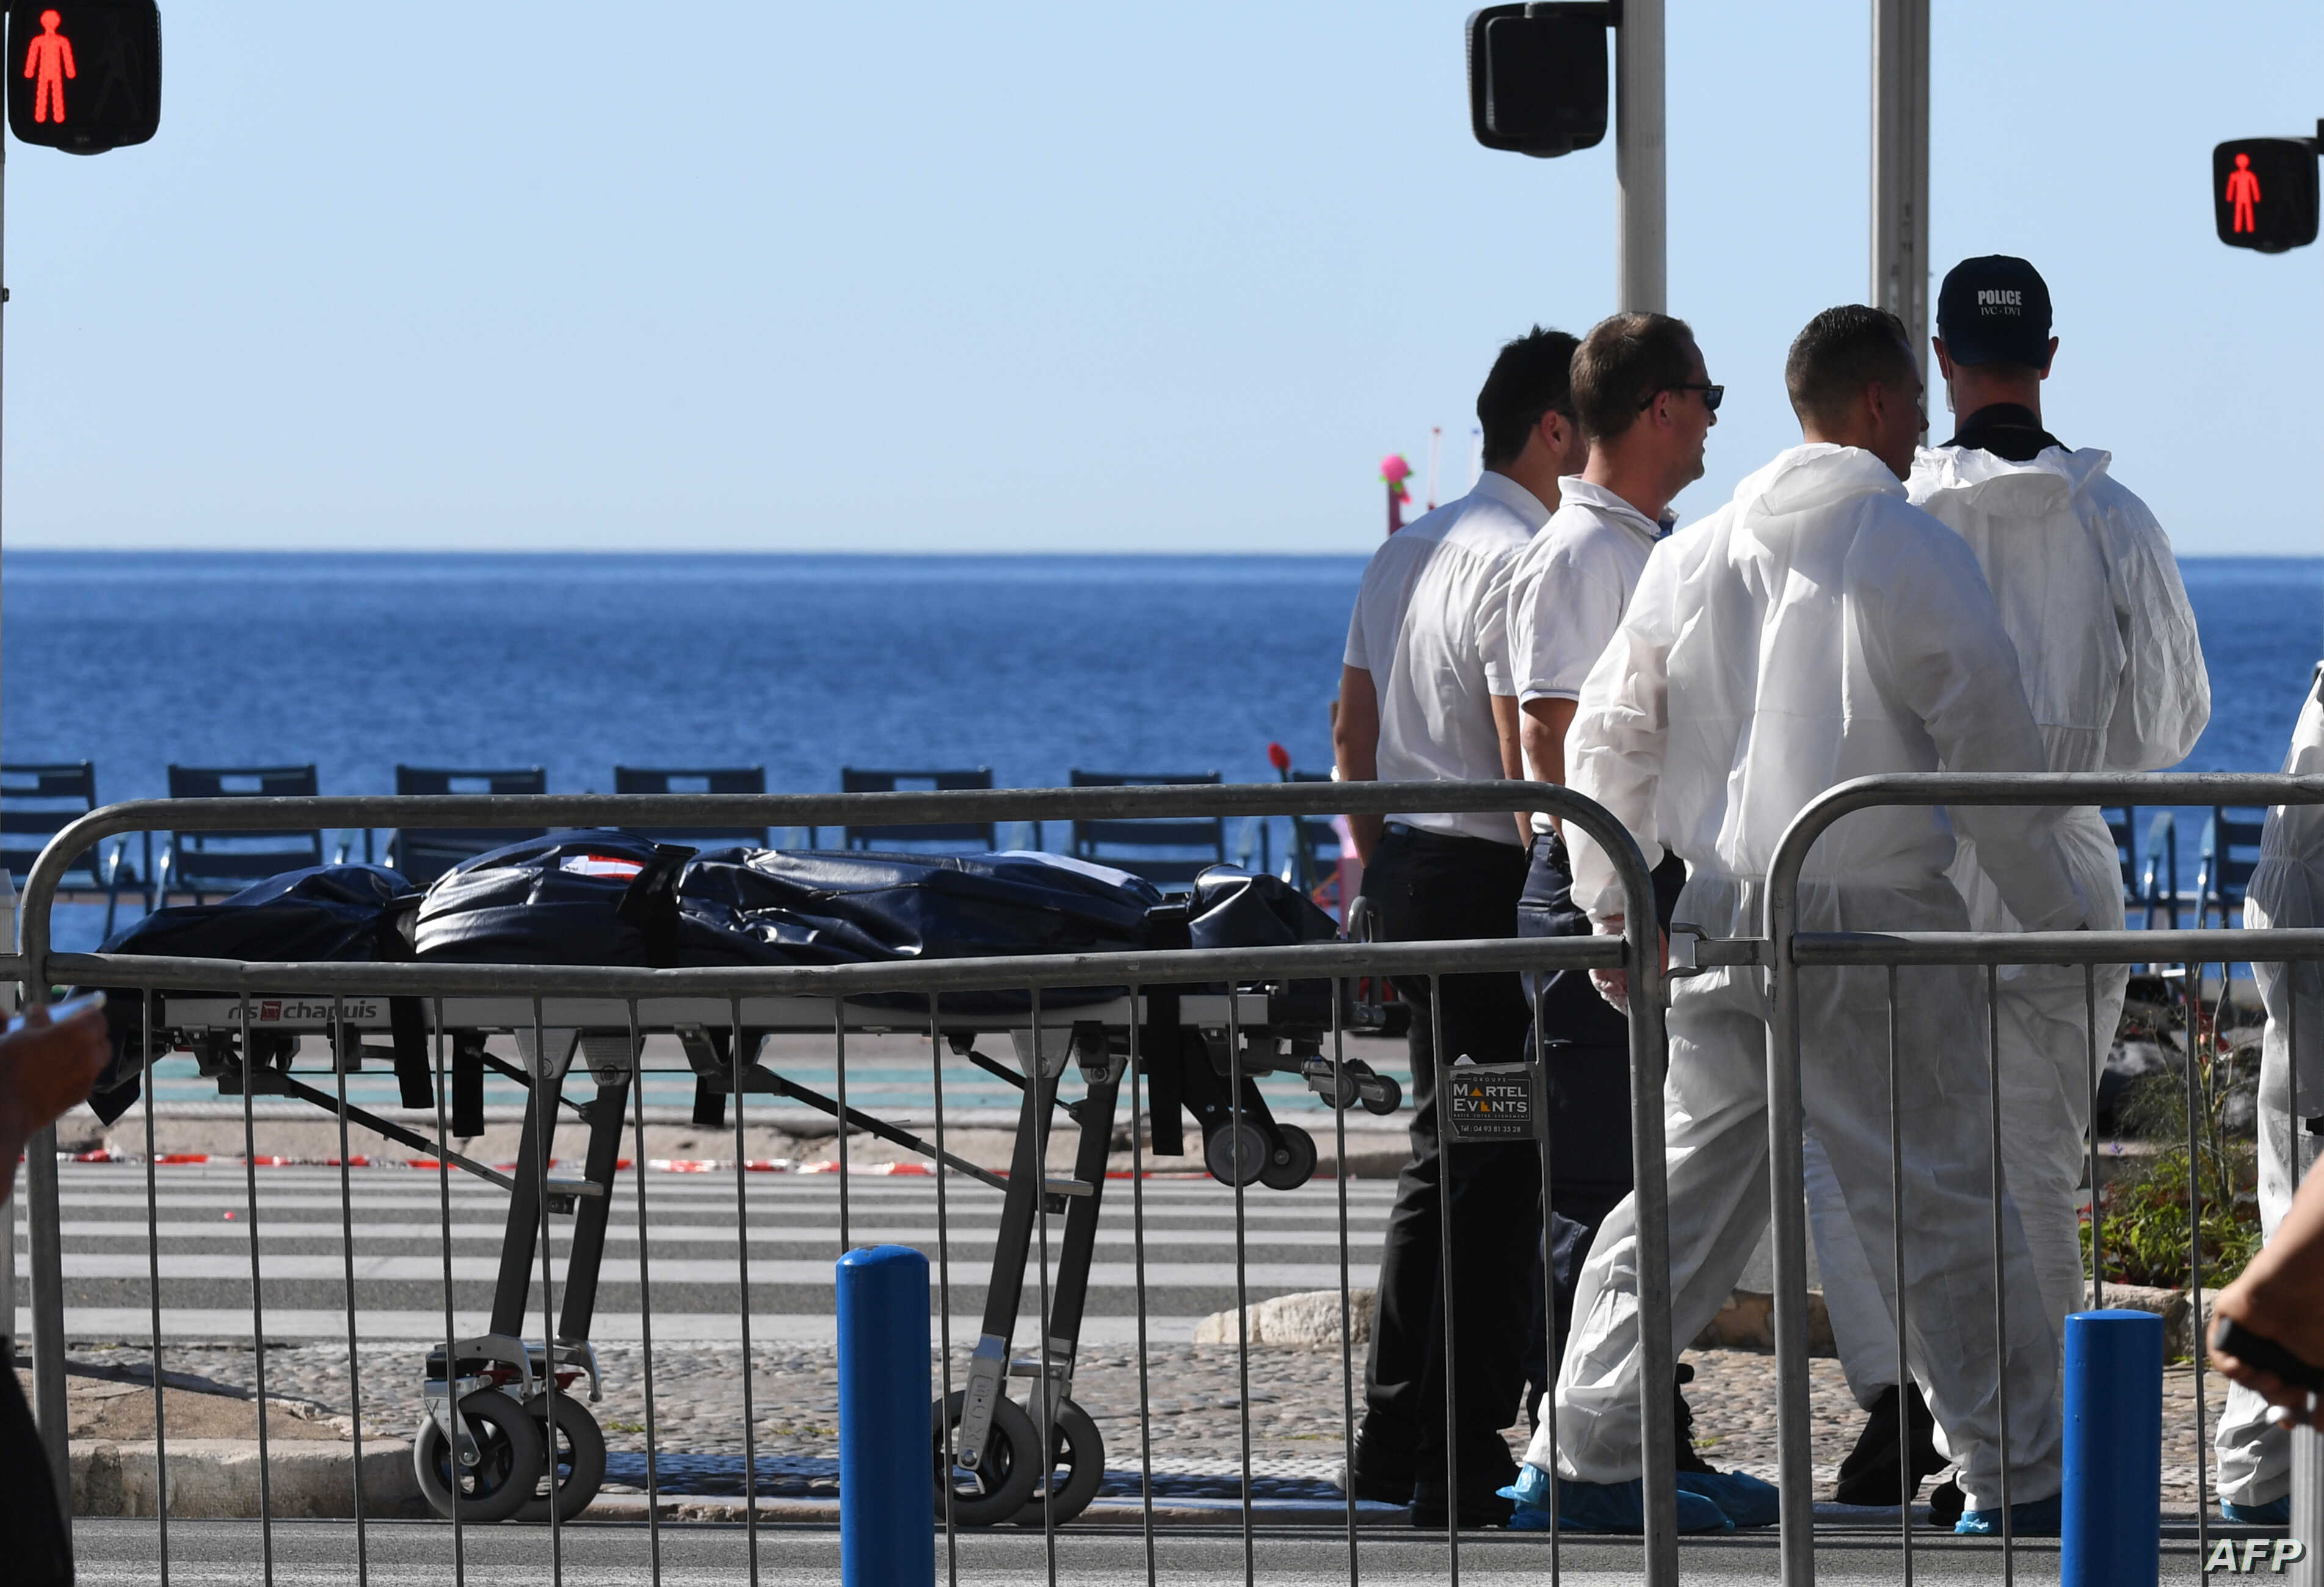 Forensics experts evacuate a dead body on the Promenade des Anglais seafront in the French Riviera town of Nice on July 15, 2016, after a gunman smashed a truck into a crowd of revelers celebrating Bastille Day.